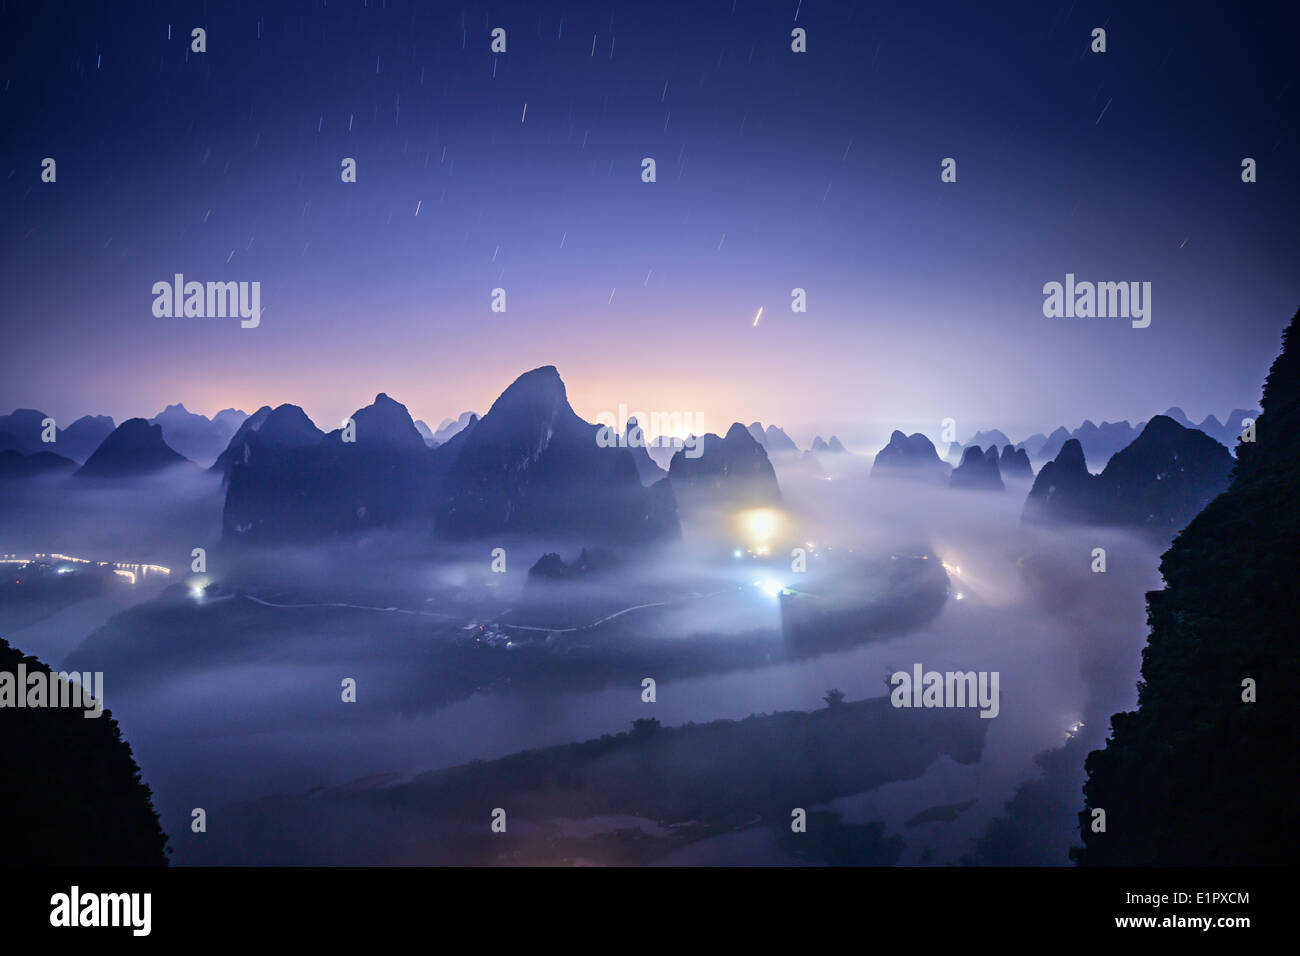 Karst Gebirgslandschaft auf dem Li-Fluss in Xingping, Provinz Guangxi, China. Stockfoto